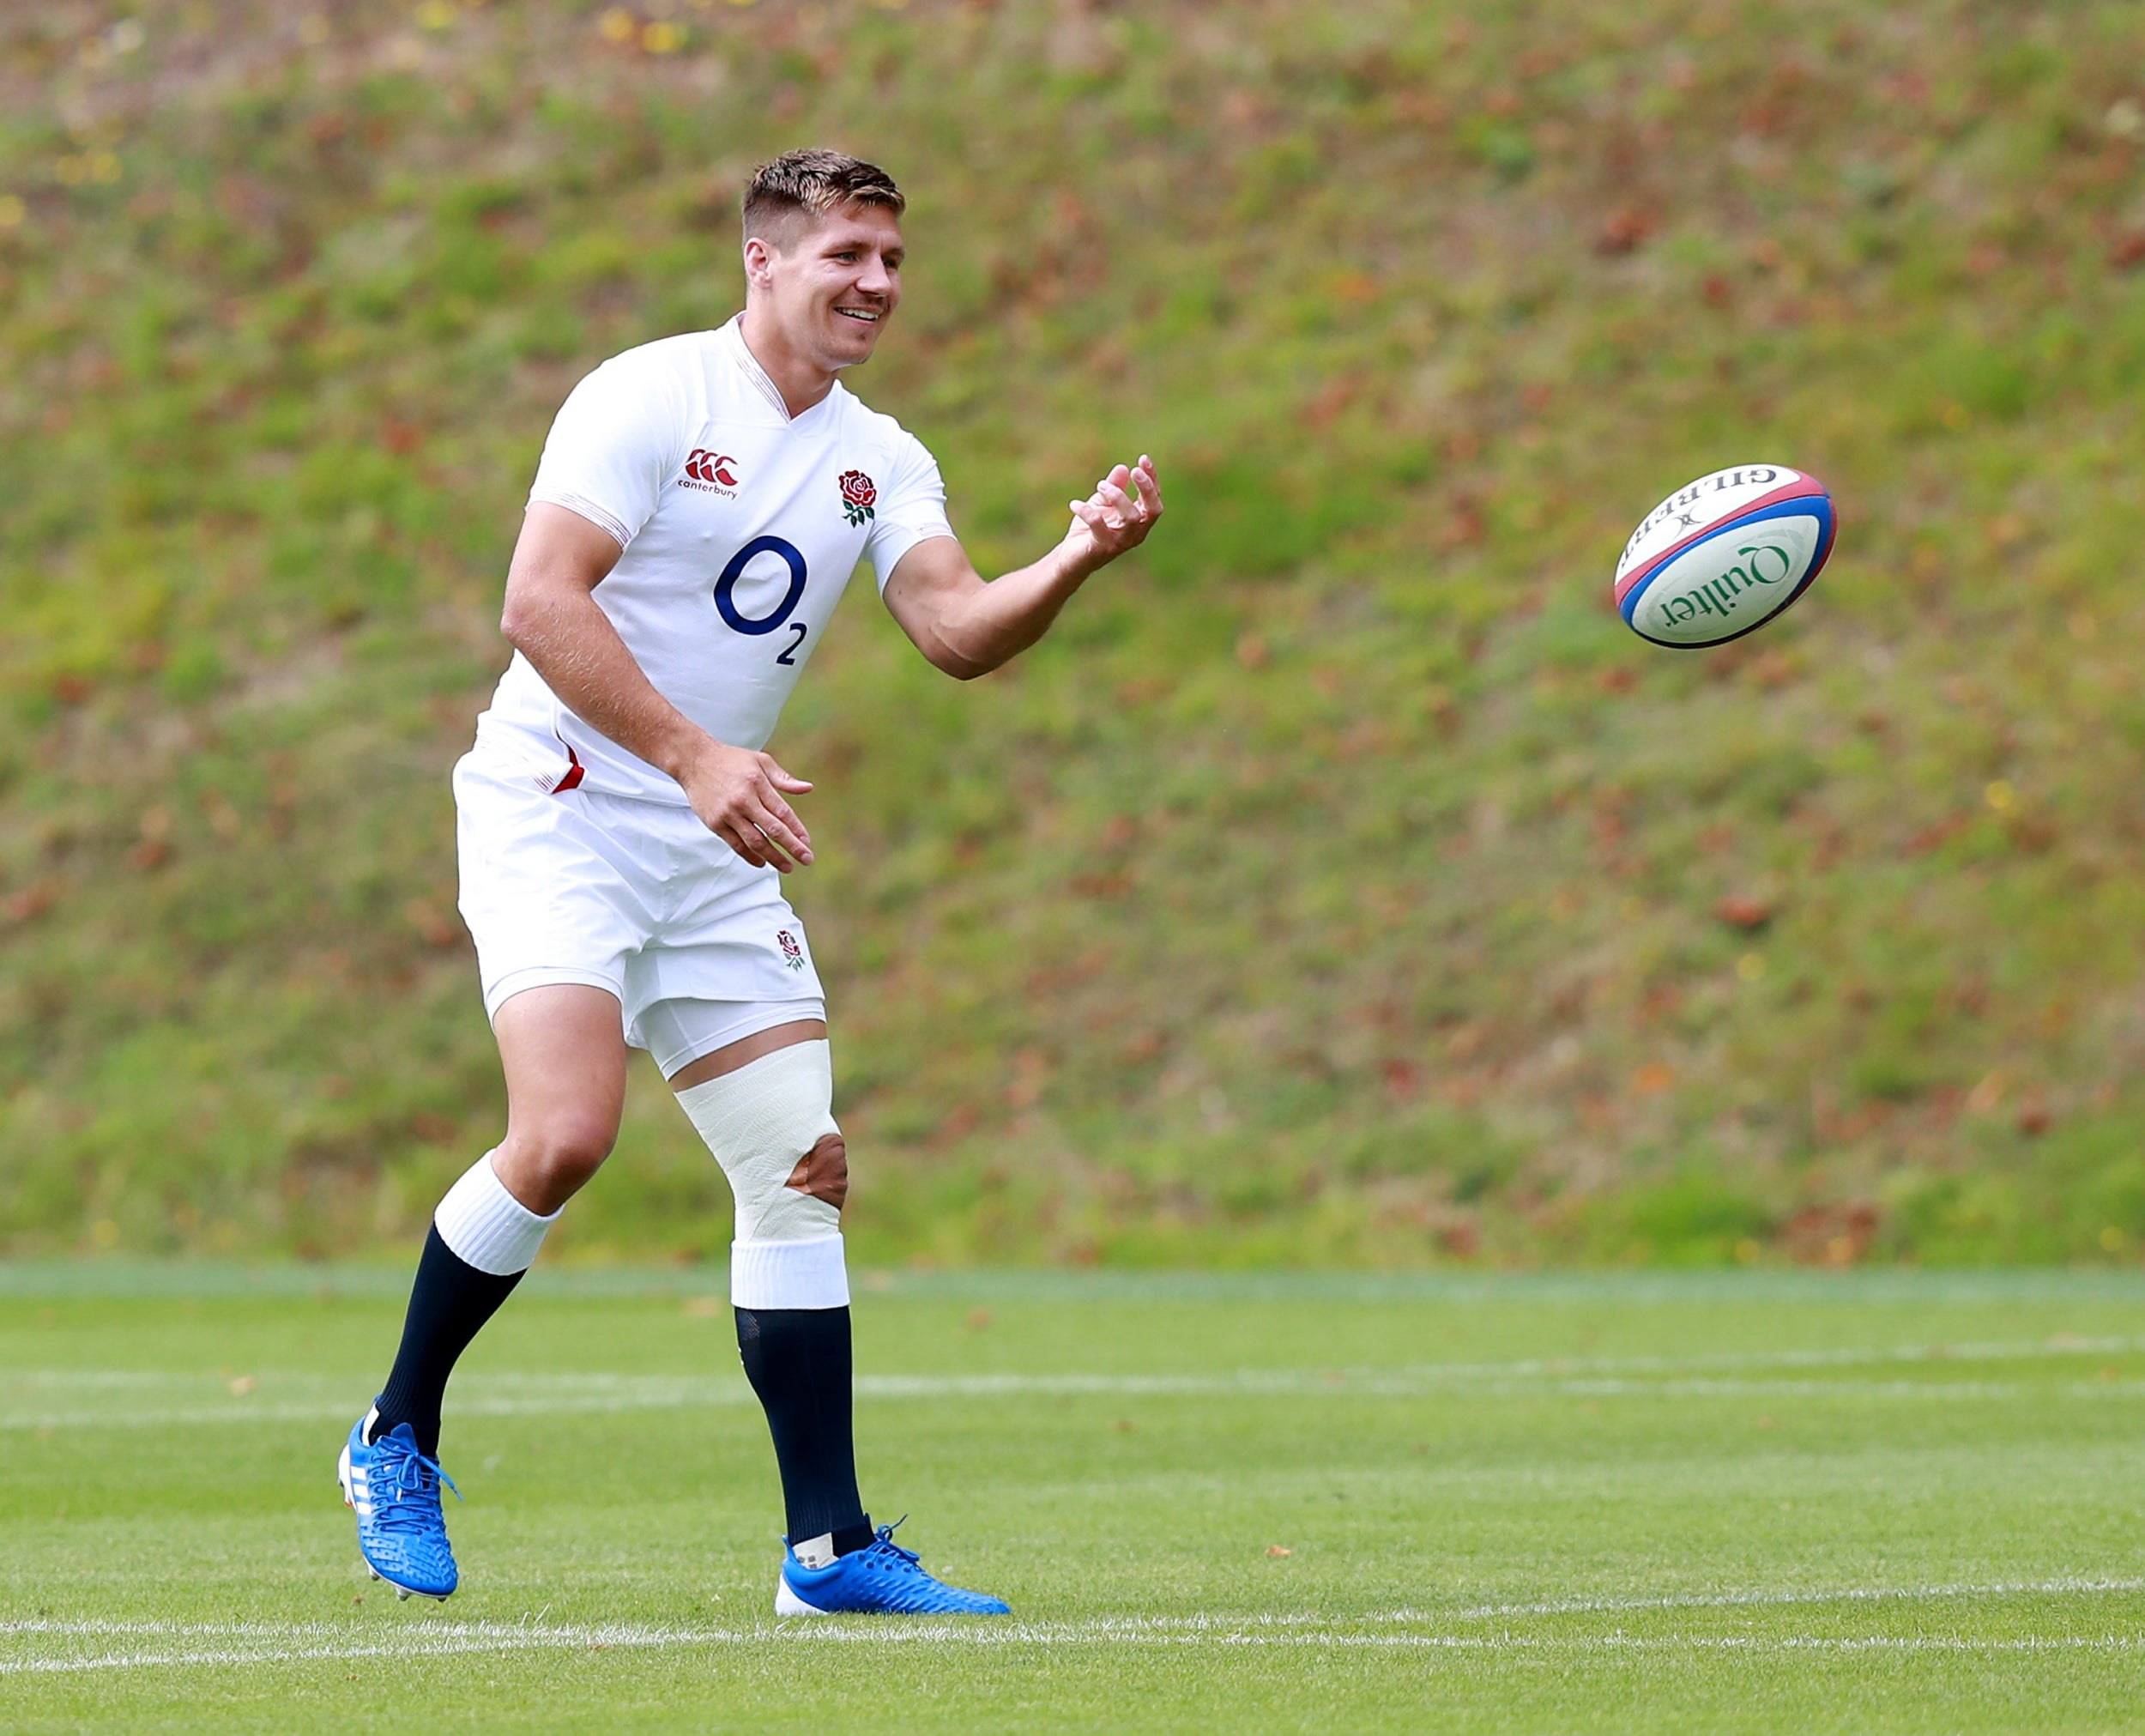 England vs Italy: What time does it start, how to watch